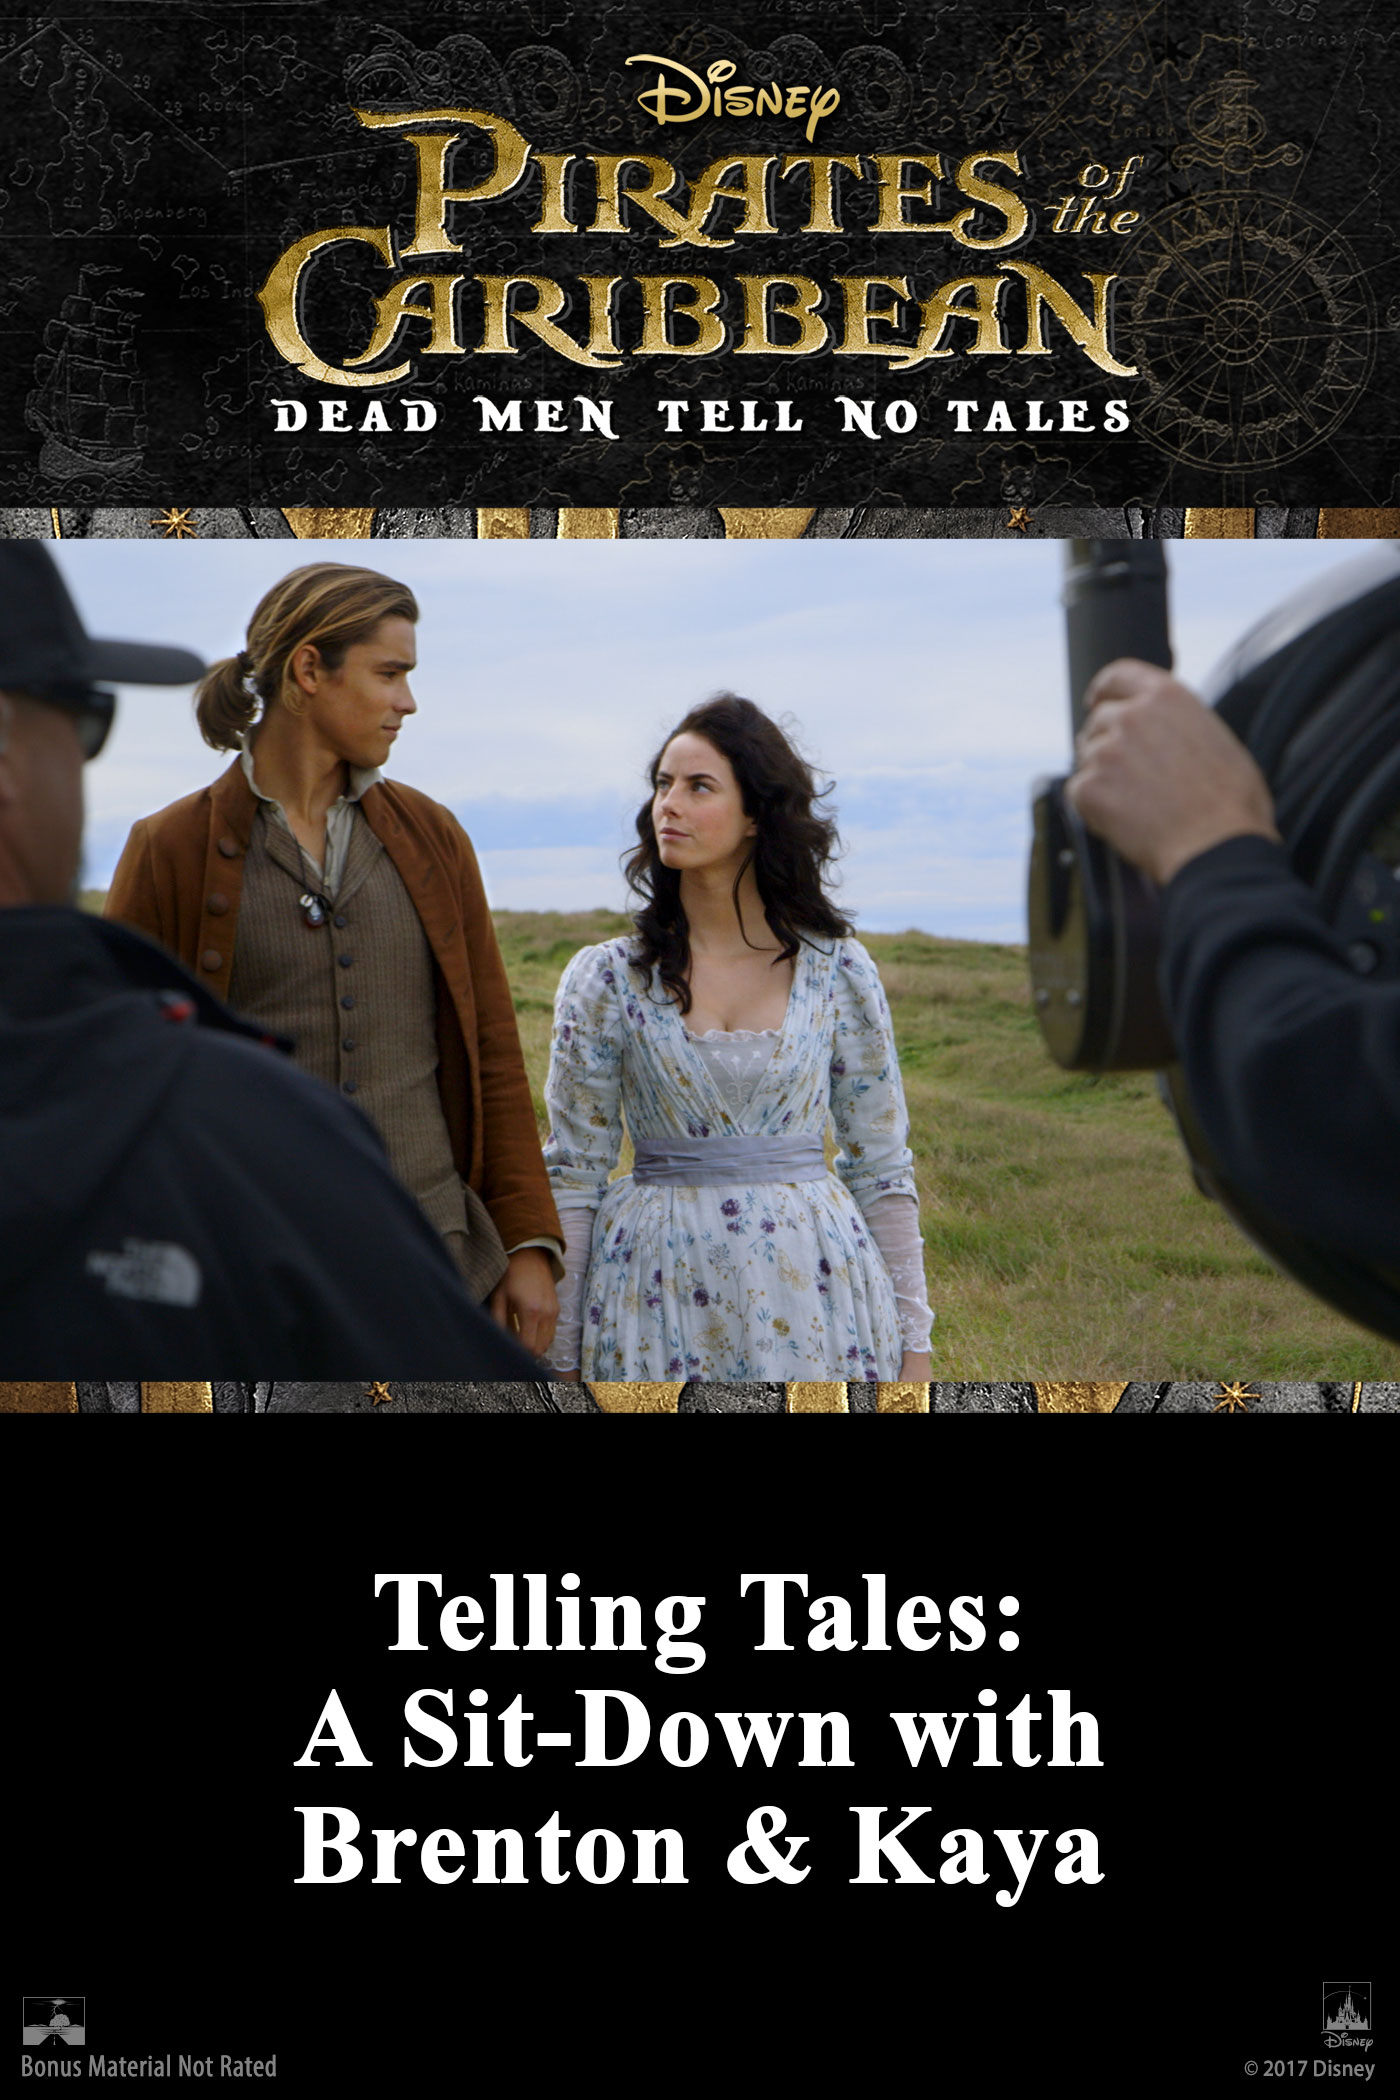 Telling Tales: A Sit-Down with Brenton & Kaya